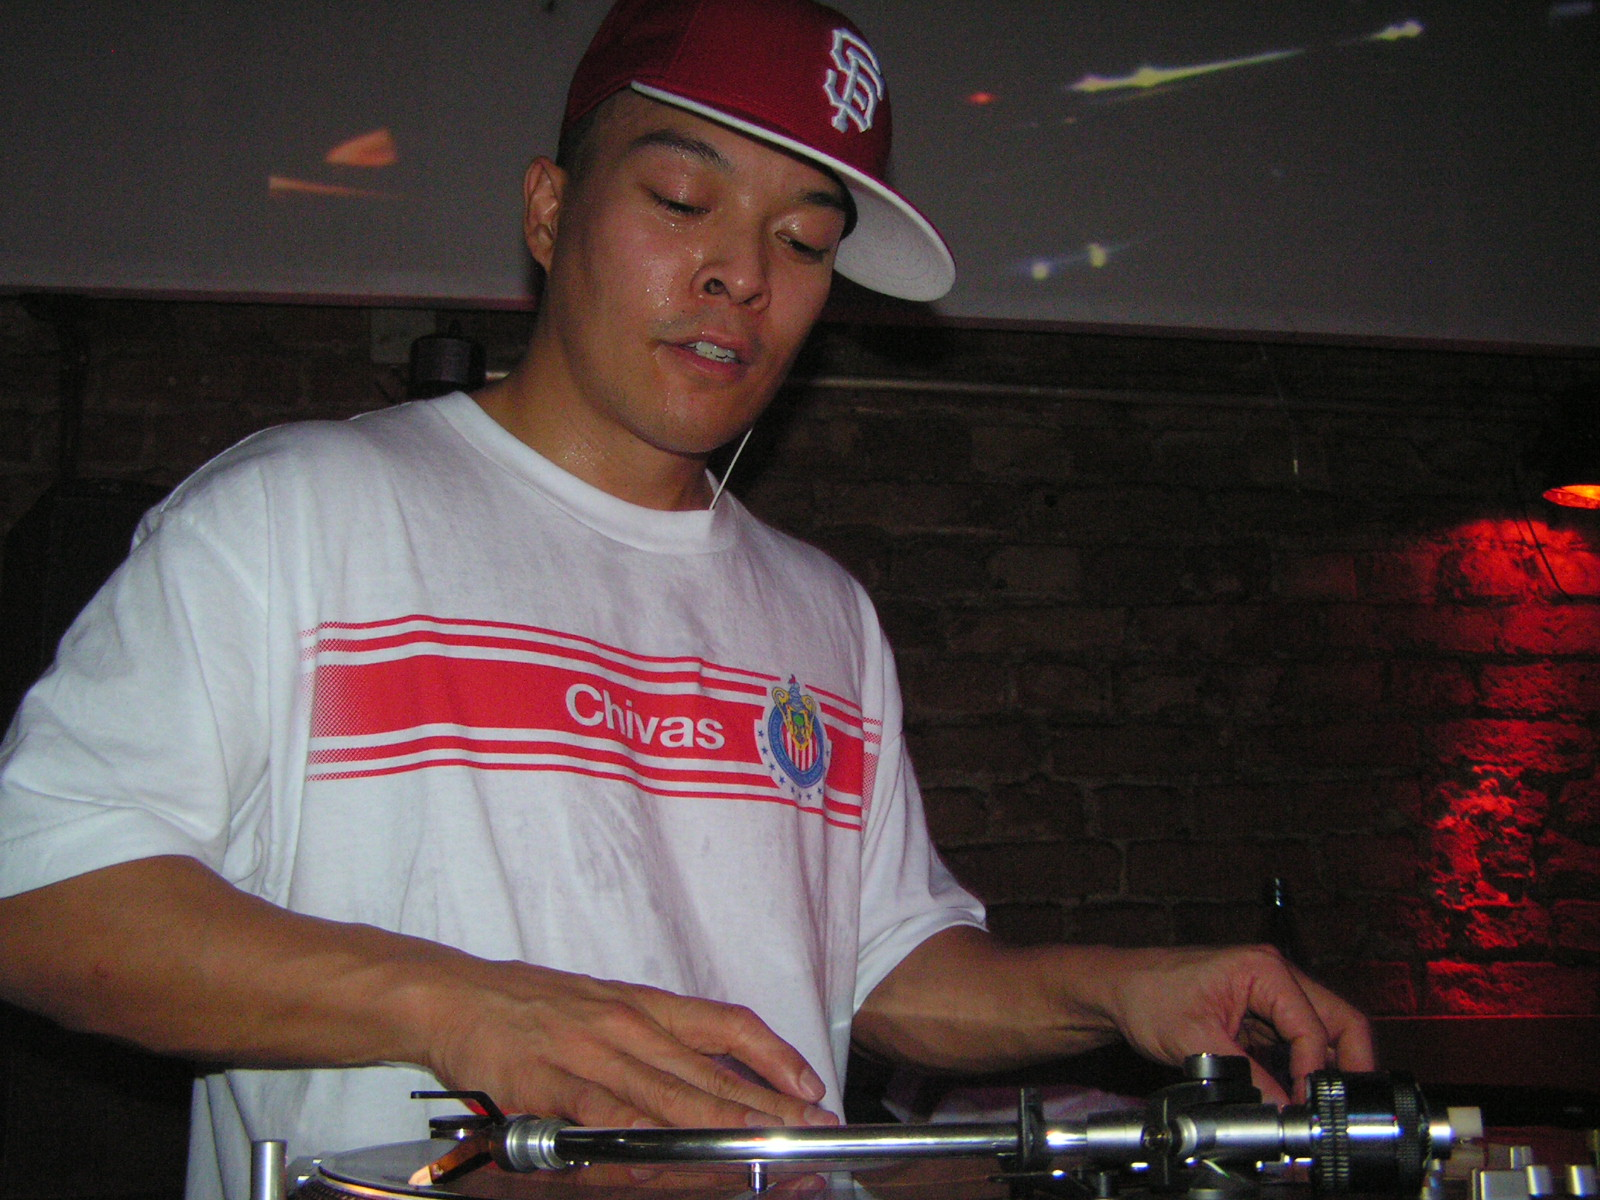 Image of DJ Qbert By Griz-Lee Christian Zebrowski - Own work, Public Domain, https://commons.wikimedia.org/w/index.php?curid=3569531